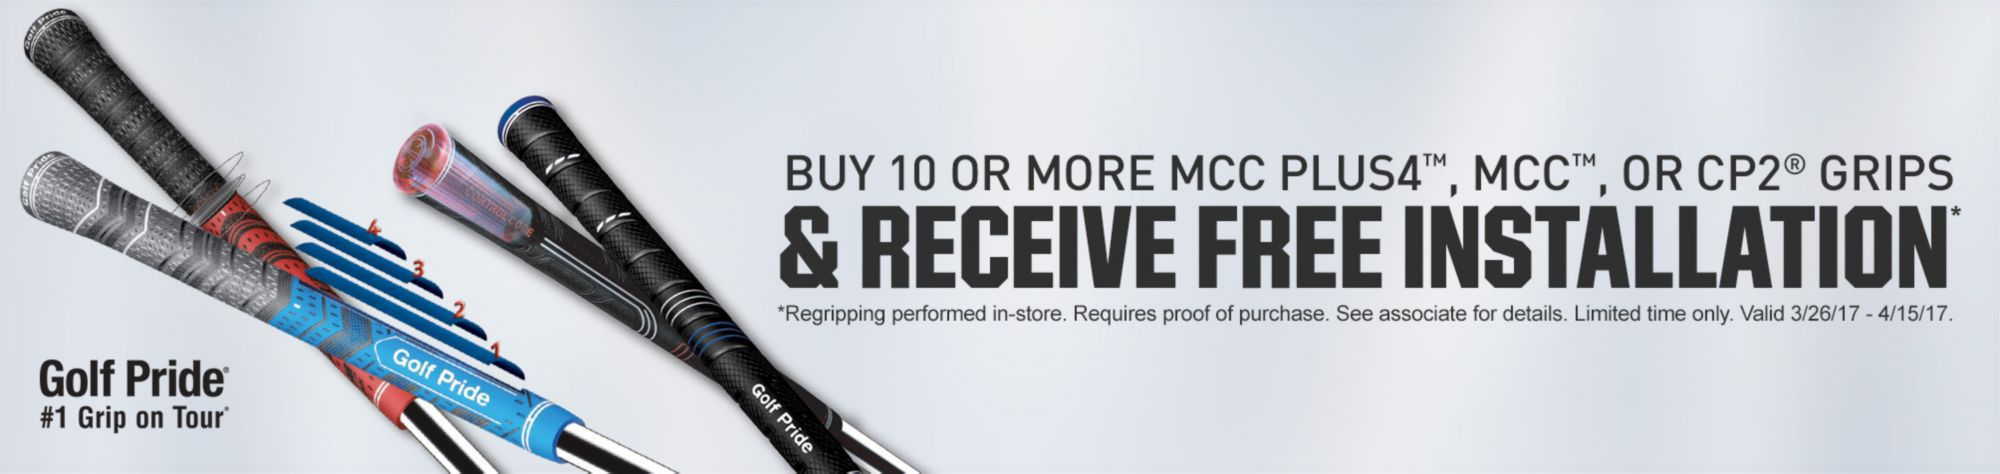 Buy 10 or More MCC PLUS4, MCC, or CP2 Grips and Receive Free Installation*